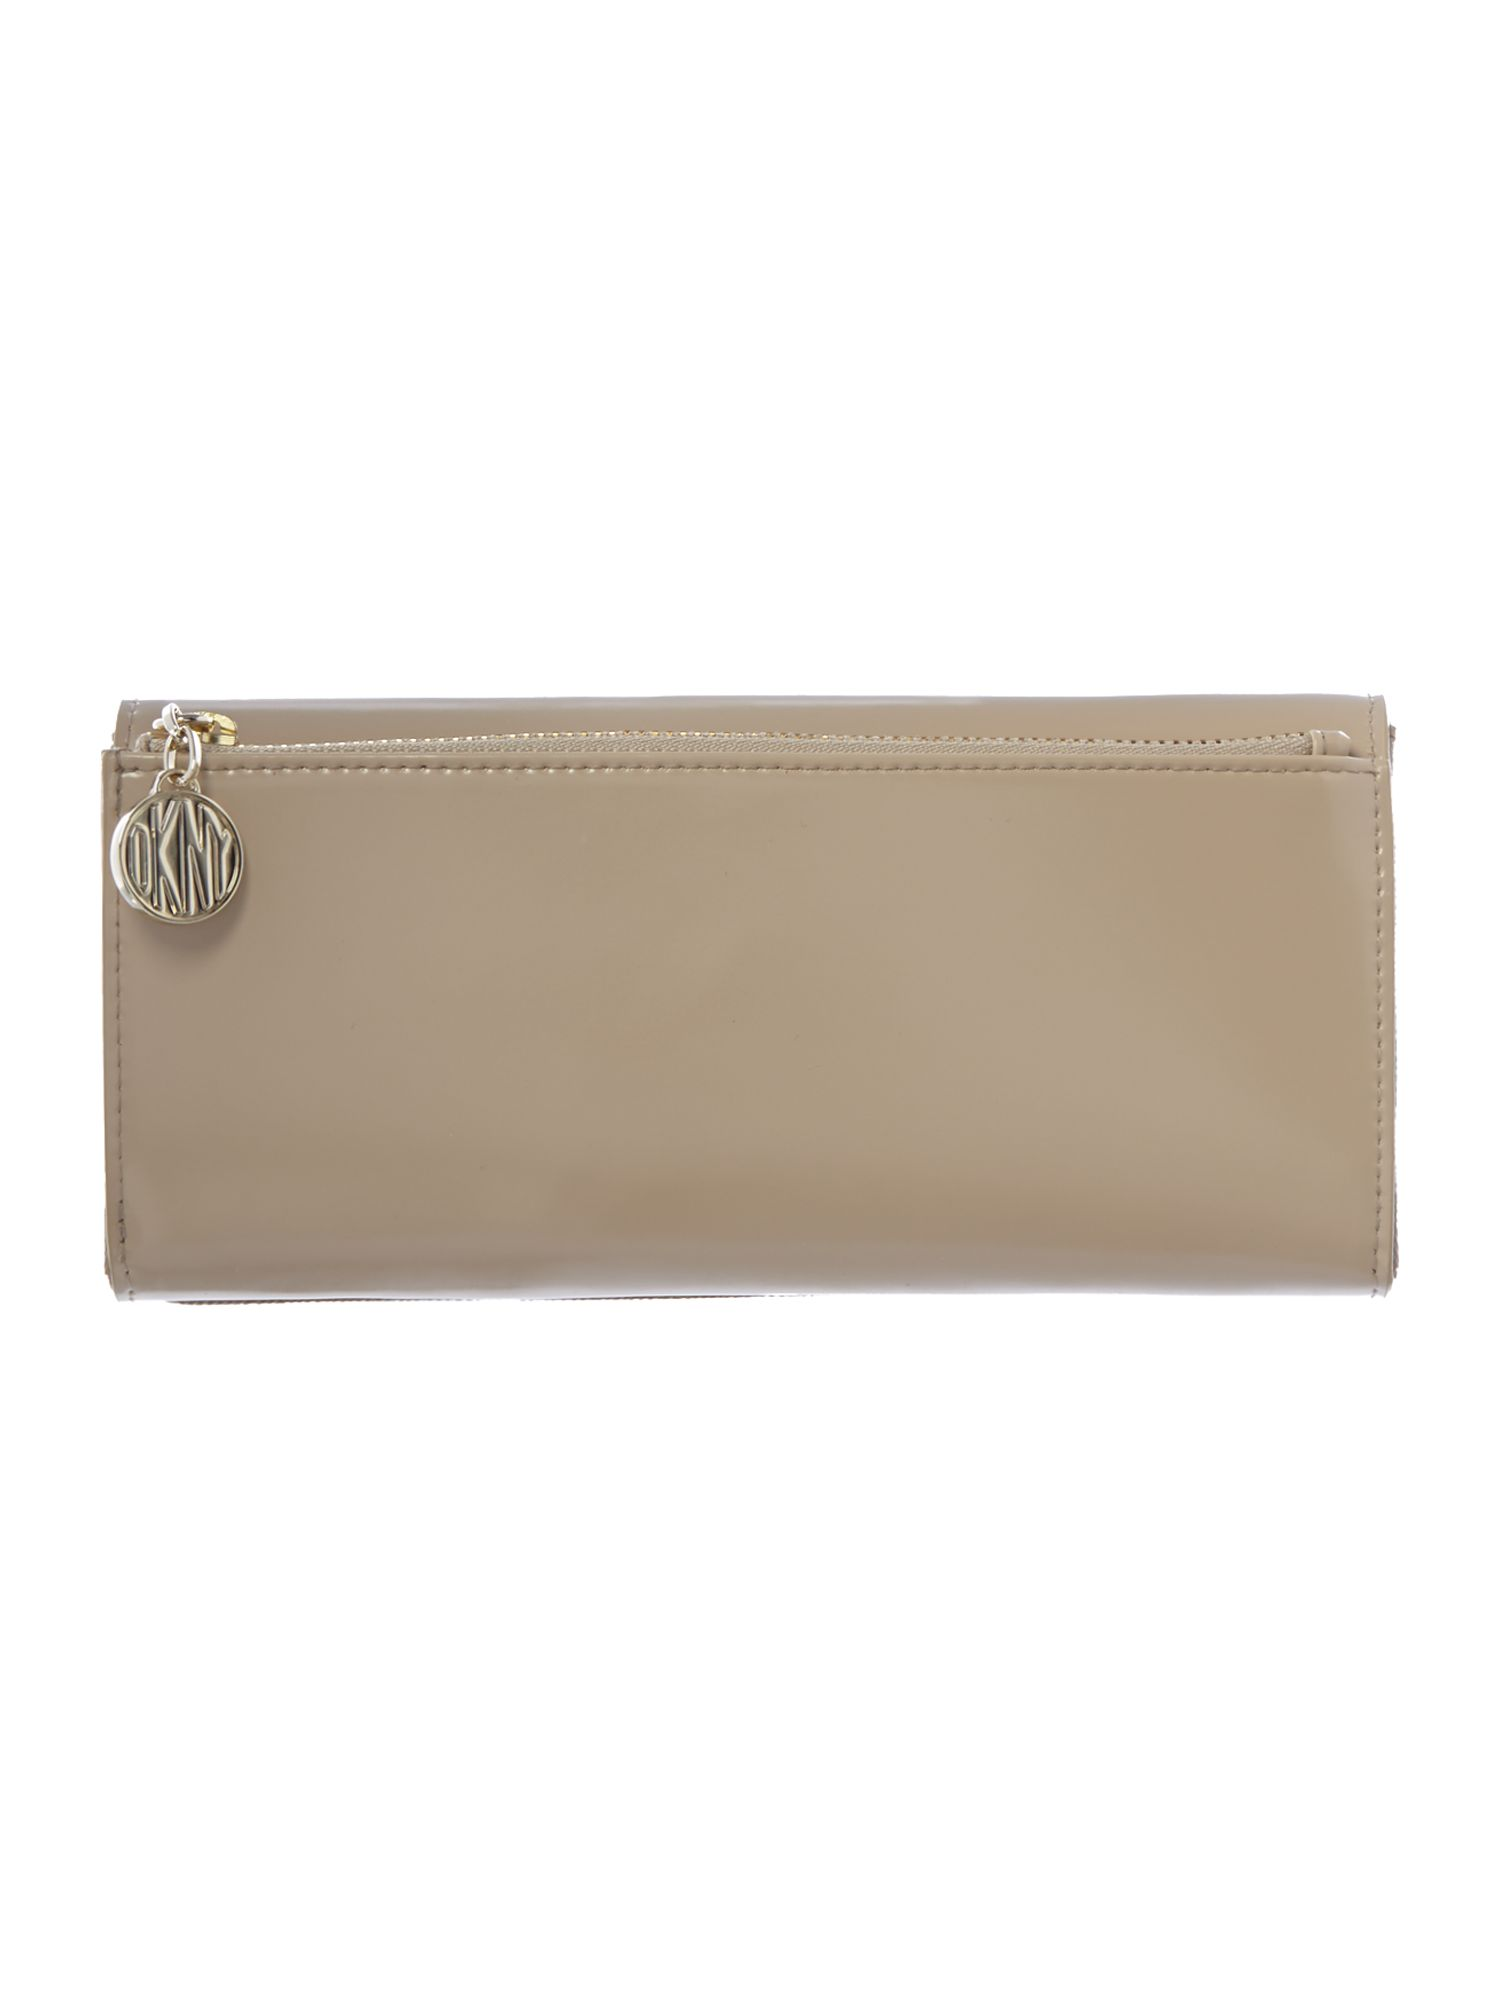 Hudson neutral large flap over purse